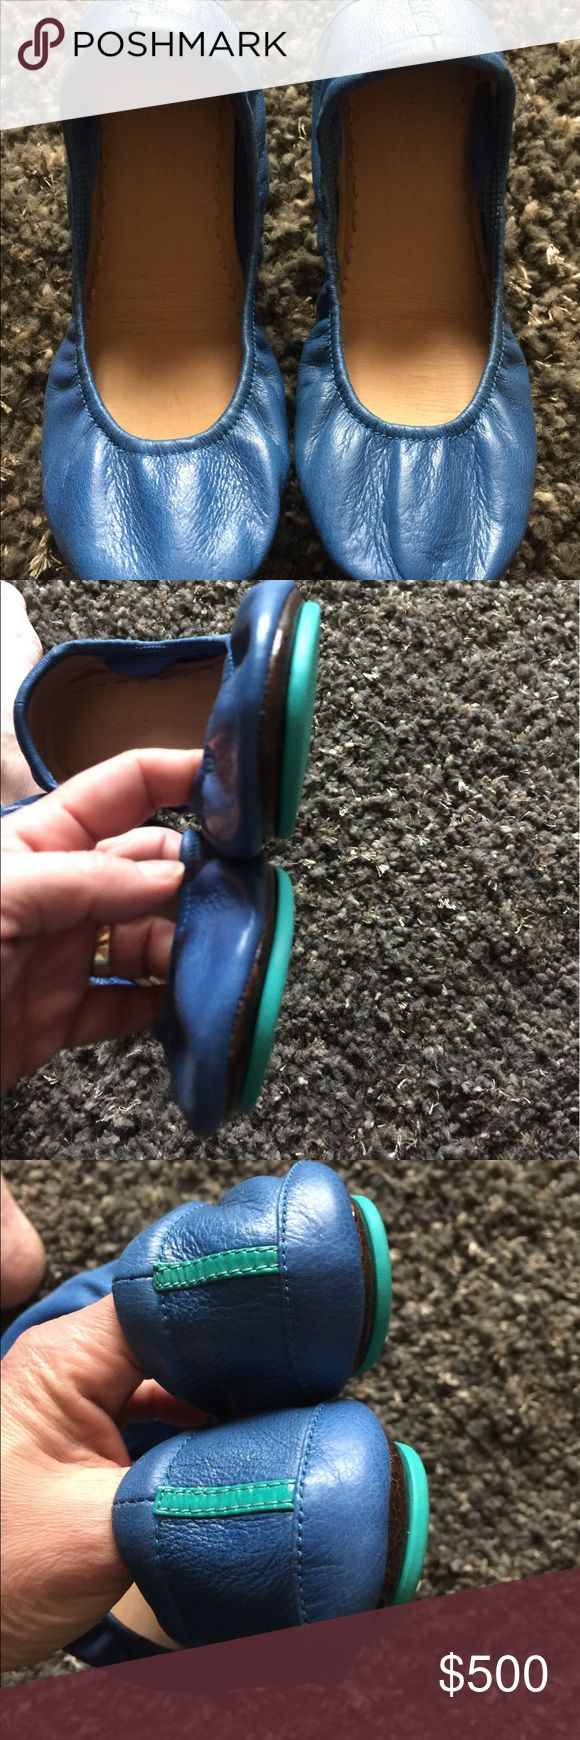 Tieks NOT for Sale ~ Trade • 9 Brand New Cobalt Blue Tieks • I don't love them... Anyone interested in trading for New or EUC? Tieks Shoes